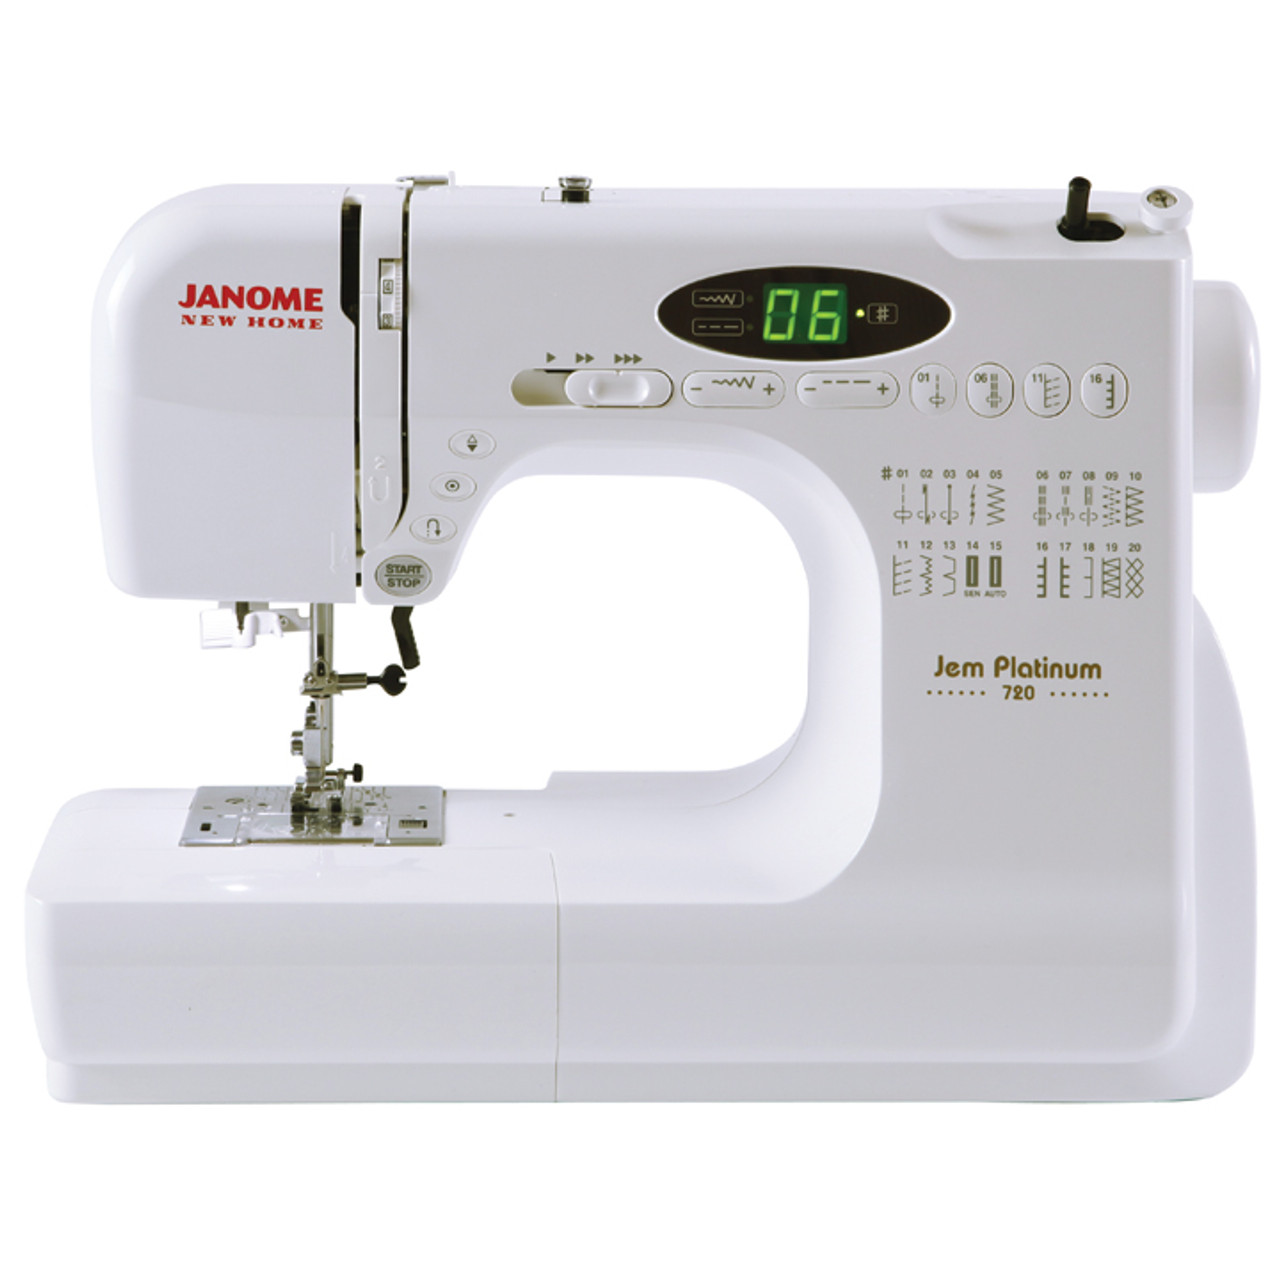 Janome New Home JNH40 Jem Sewing Machine With Exclusive Bonus Awesome New Sewing Machine